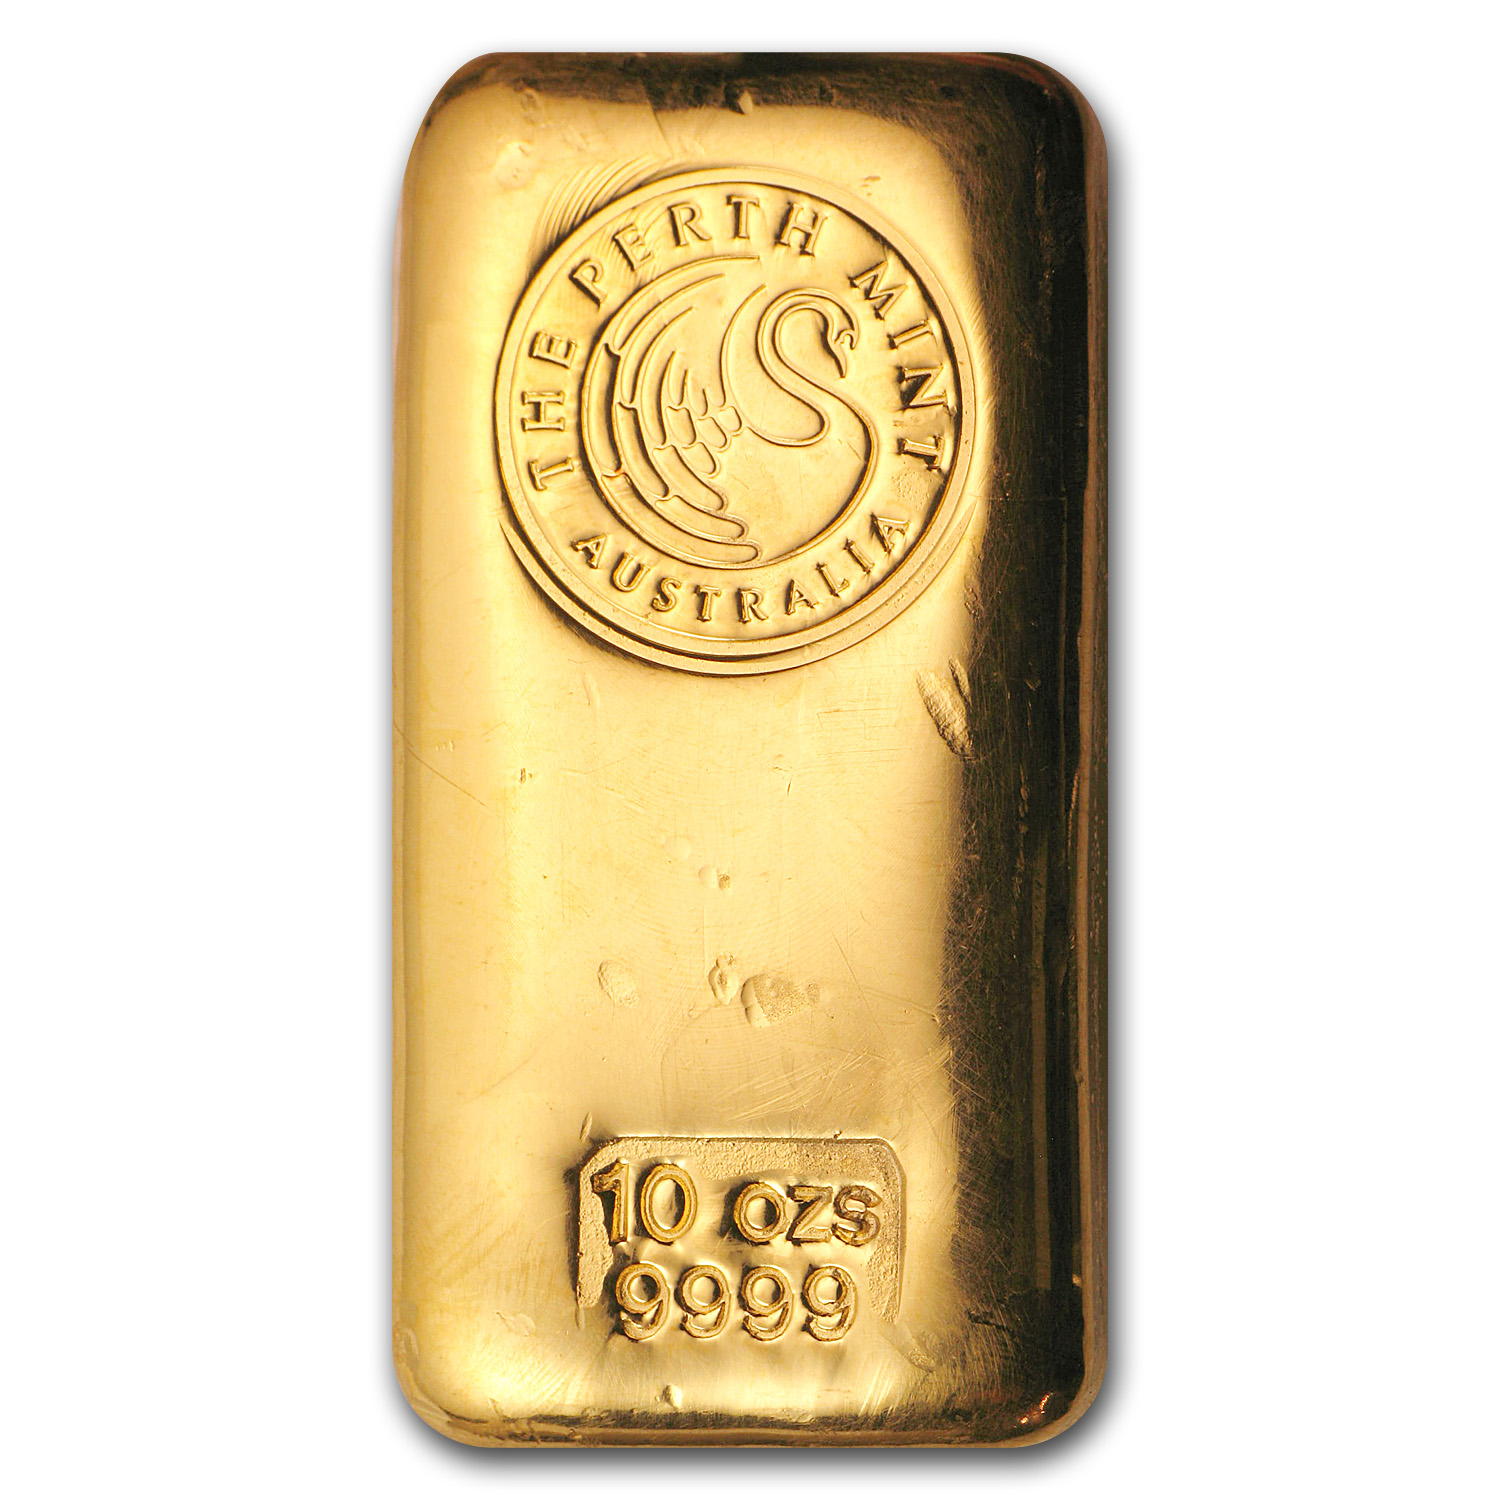 10 oz Gold Bars - Perth Mint (Poured/Loaf-Style)